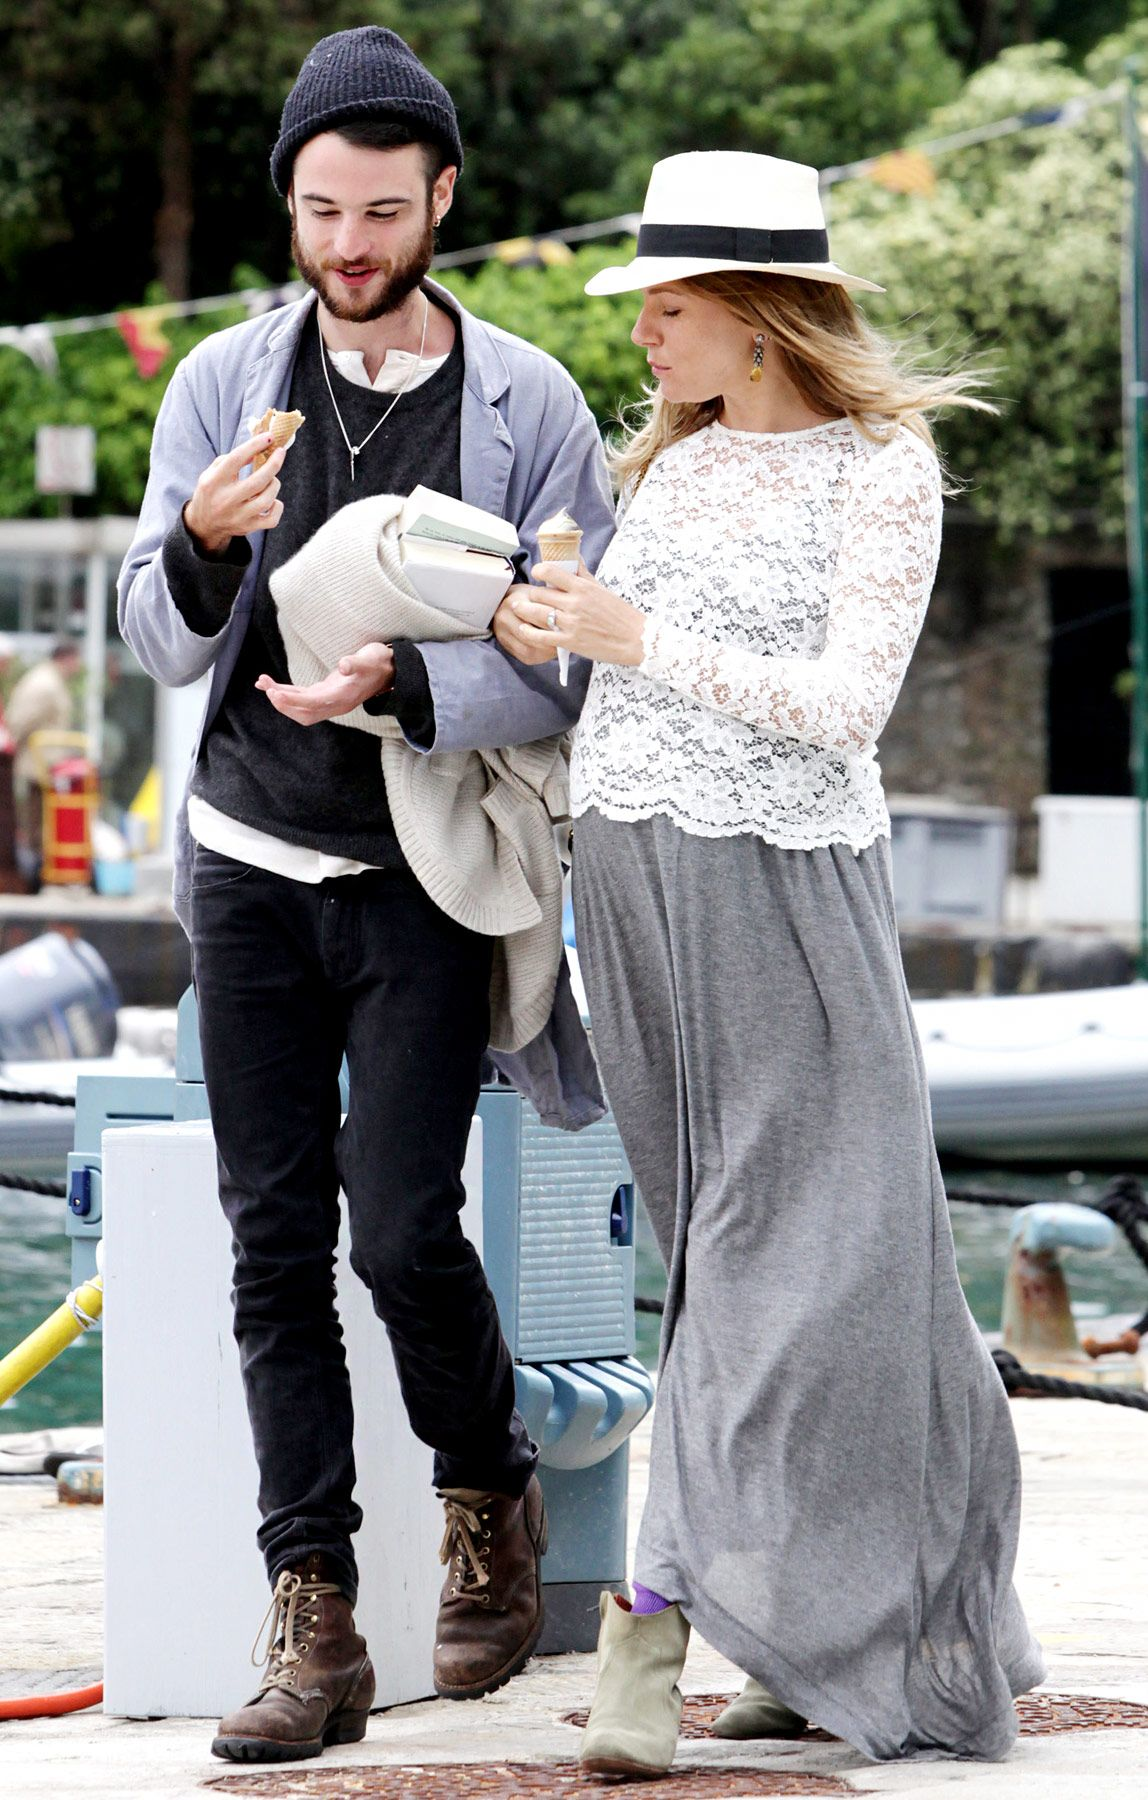 d5e08fe2738e8 Sienna Miller's Maternity Style: I have a gray maxi dress like this, the  lace cover up is sooo cute!